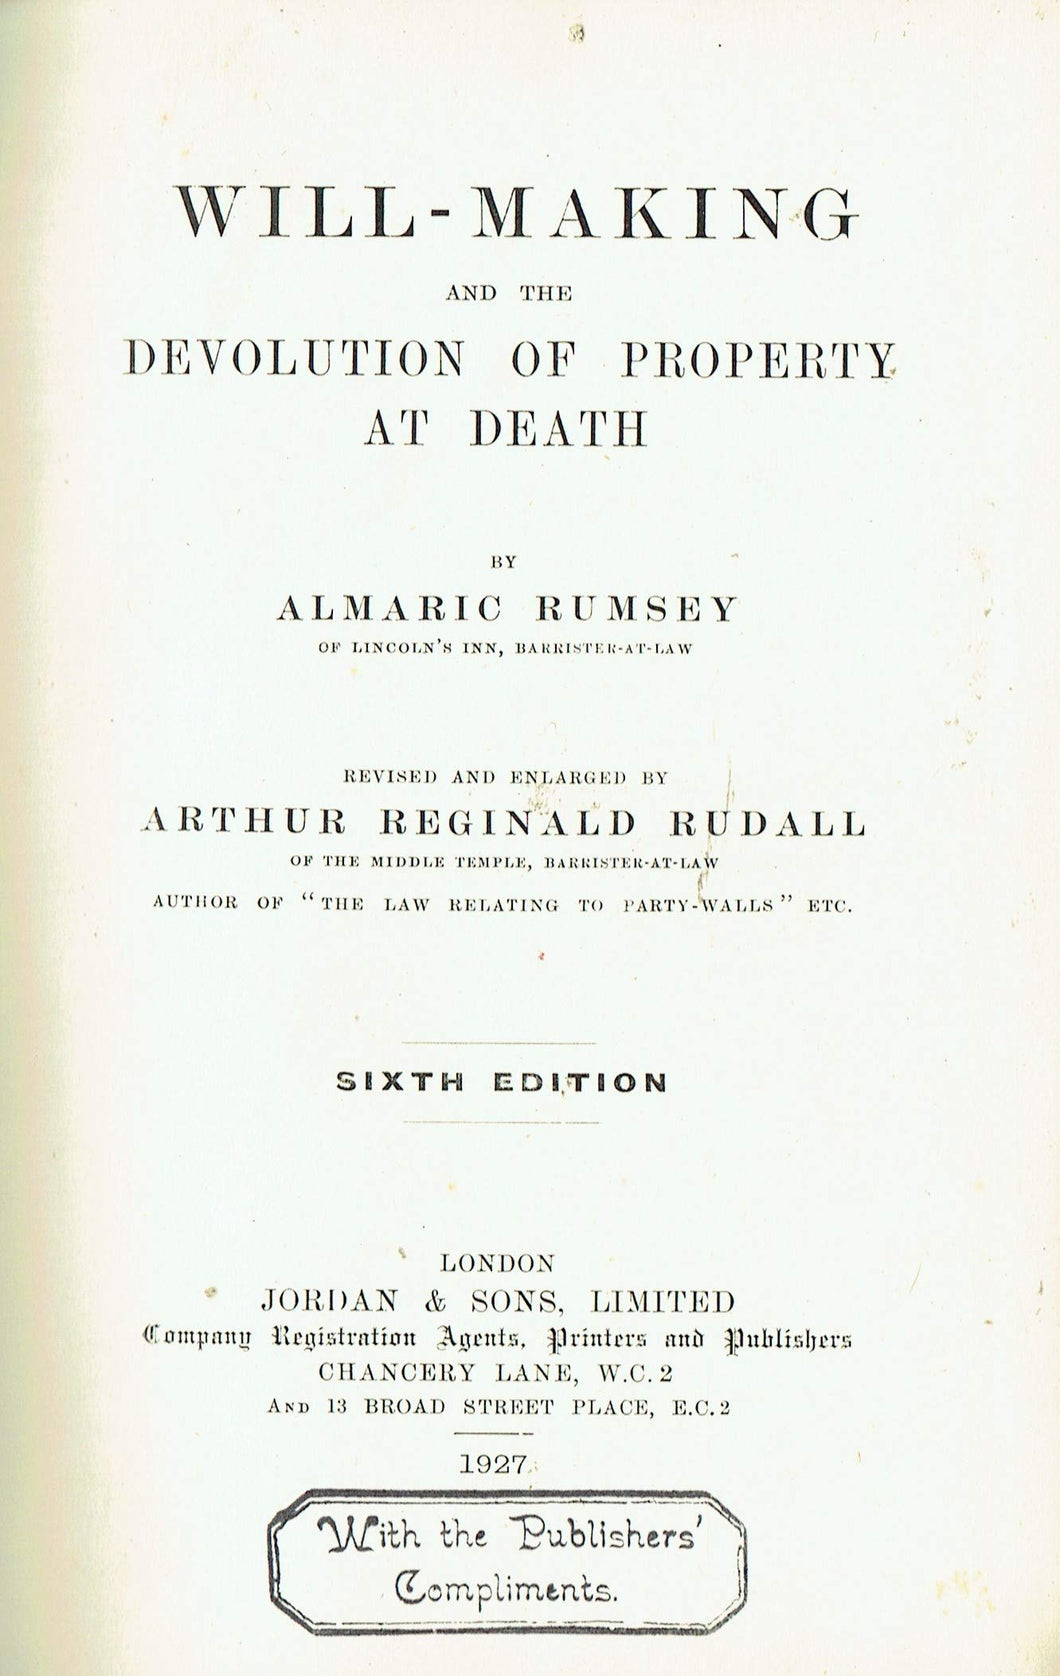 Will-Making and the Devolution of Property at Death - Sixth Edition